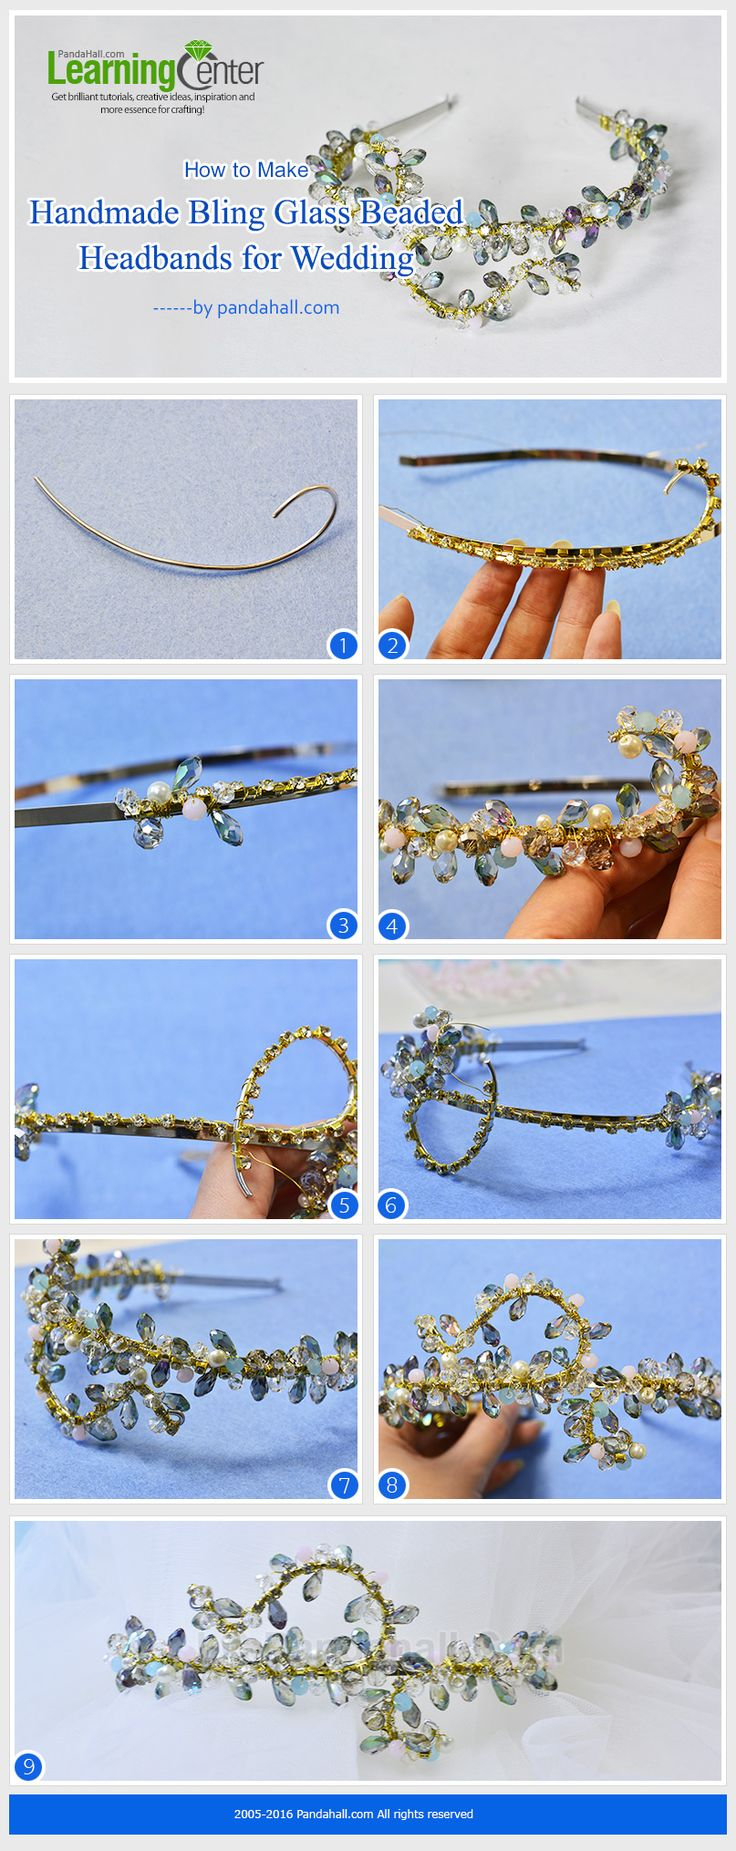 LC.Pandahall.com has published the tutorial on How to Make Handmade Bling Glass Beaded Headbands for Wedding.